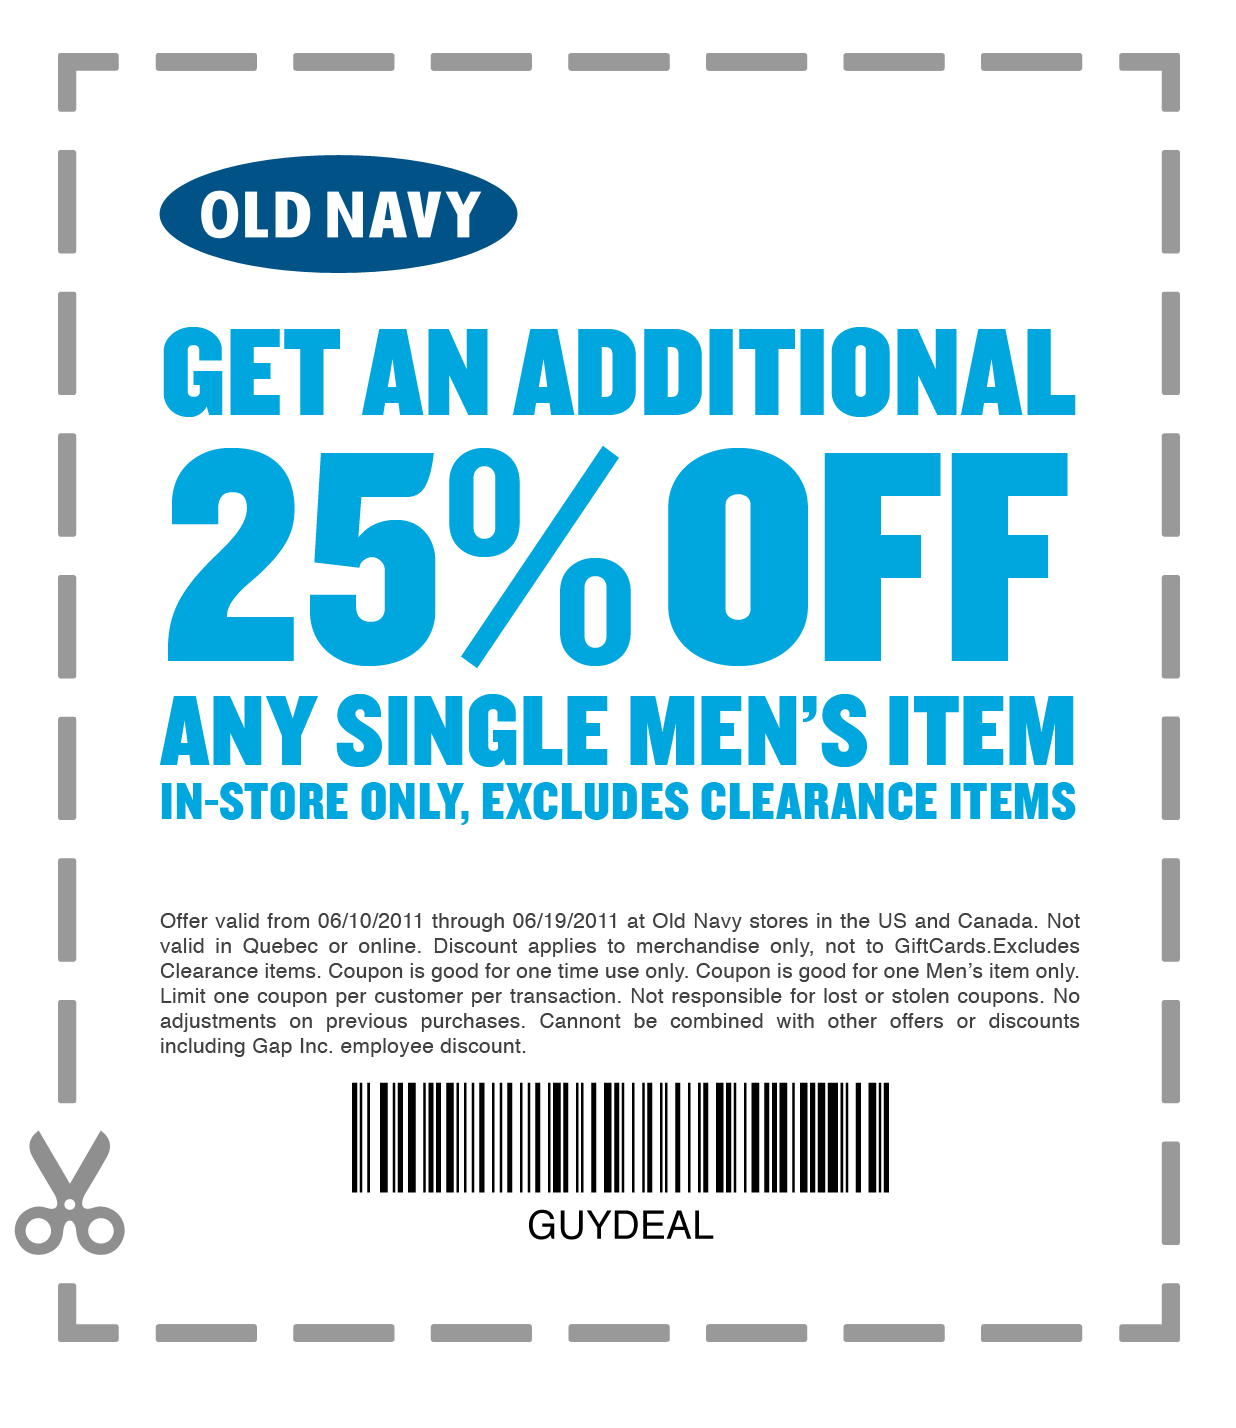 Old Navy Shipping Details: Old Navy offers free shipping on orders of $50 or more when you select the free business day option. Order under $50 ship for just $7.